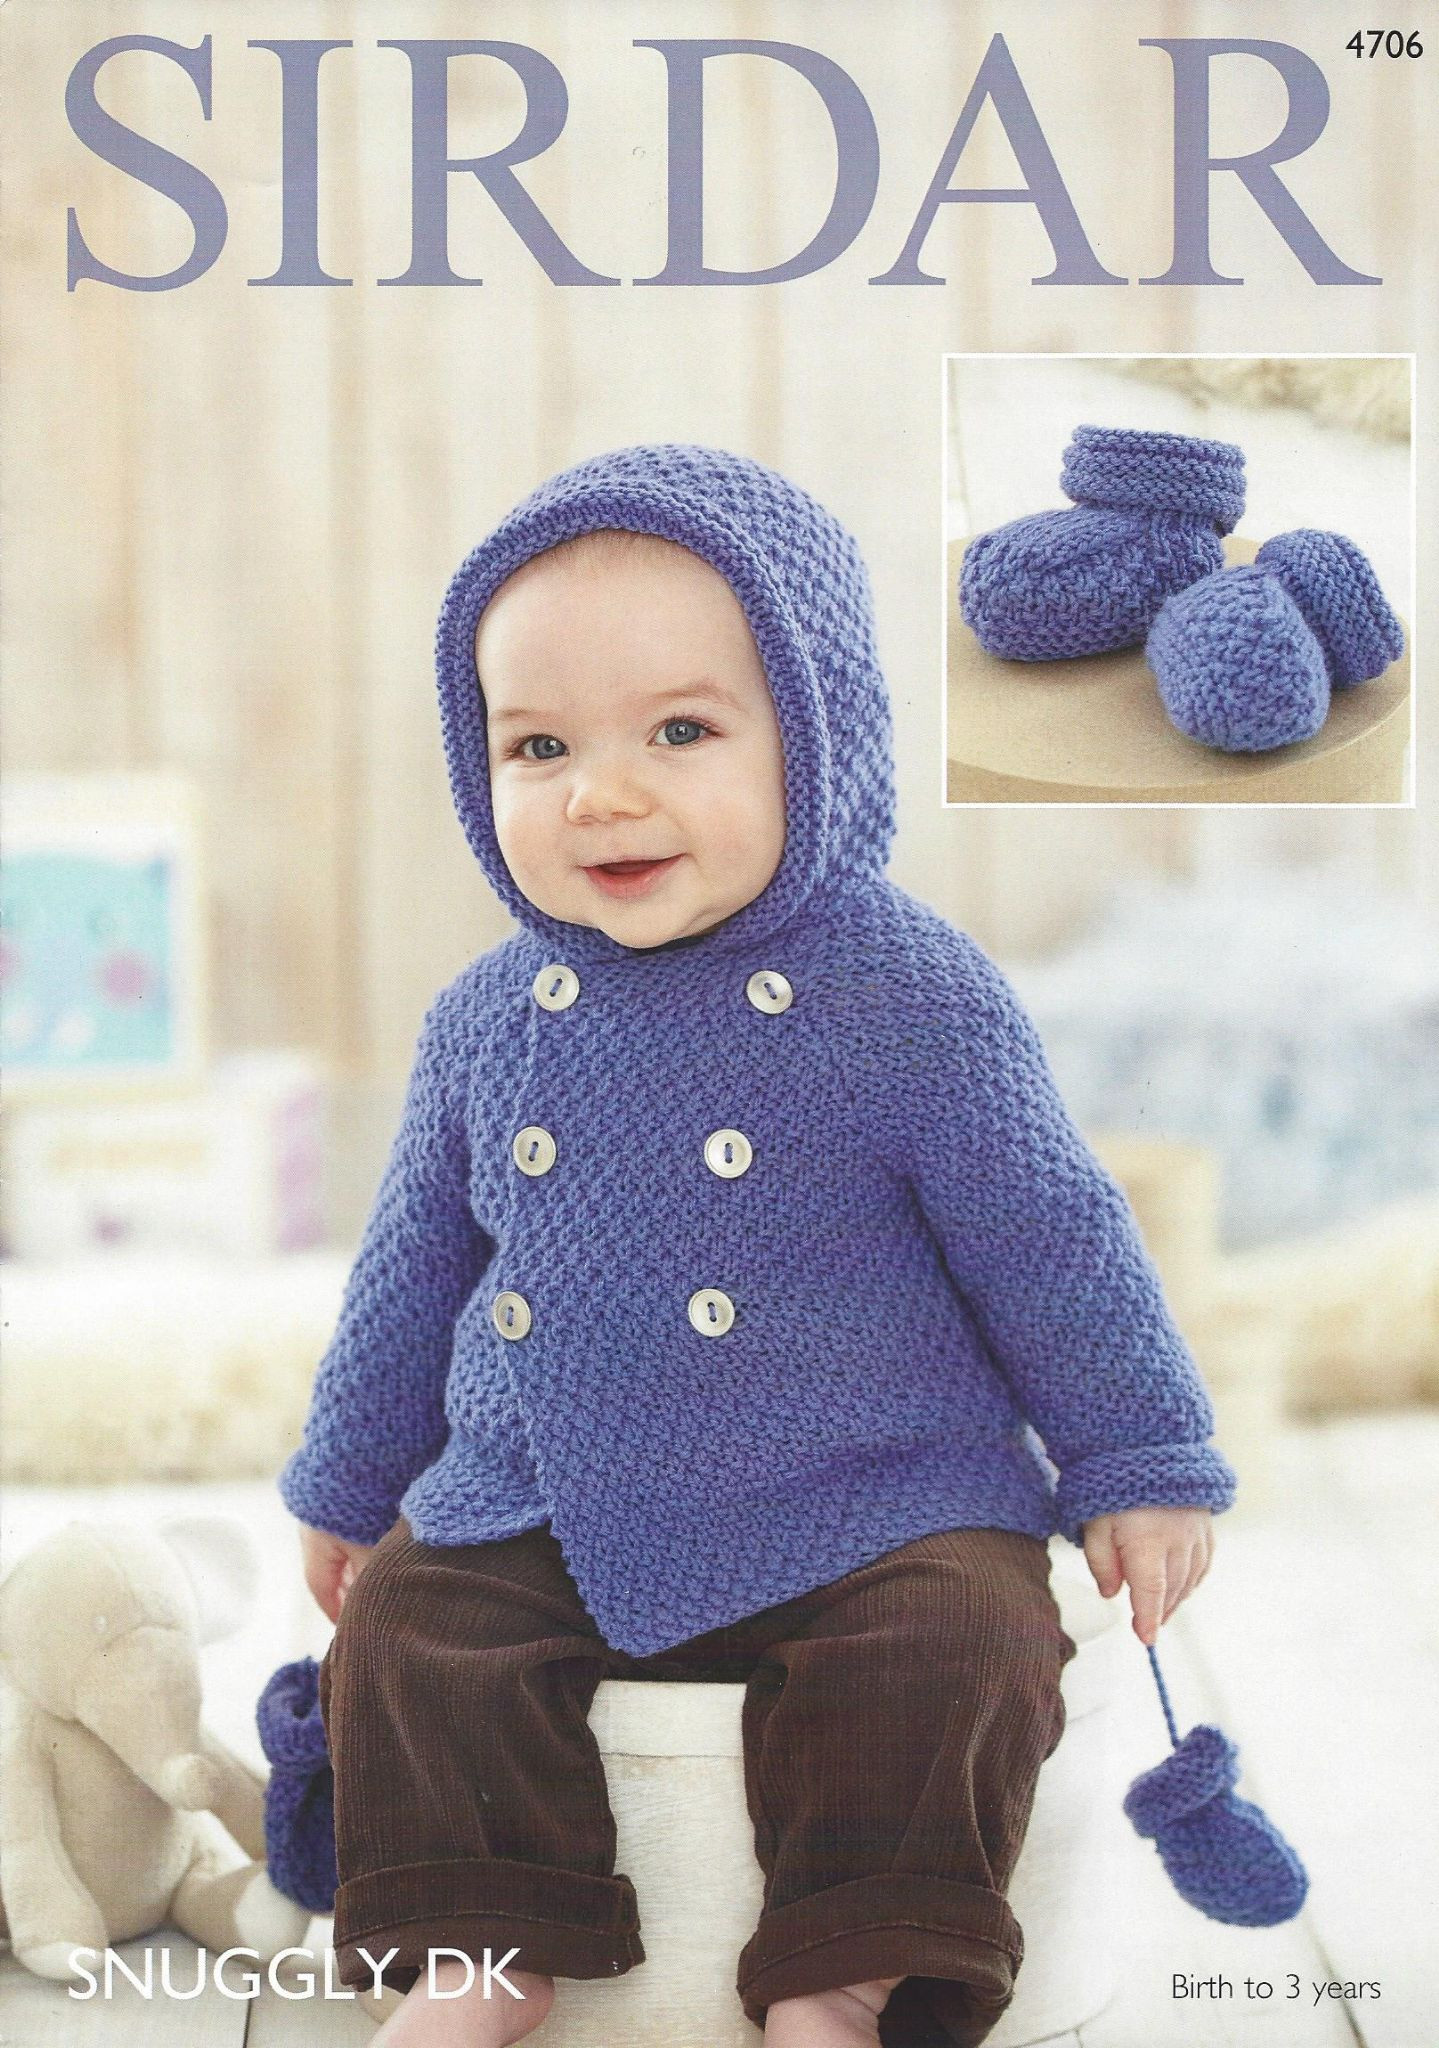 Elegant Sirdar Snuggly Dk 4706 Baby Boy S Coat Mittens & Botees Baby Boy Patterns Of Contemporary 48 Models Baby Boy Patterns